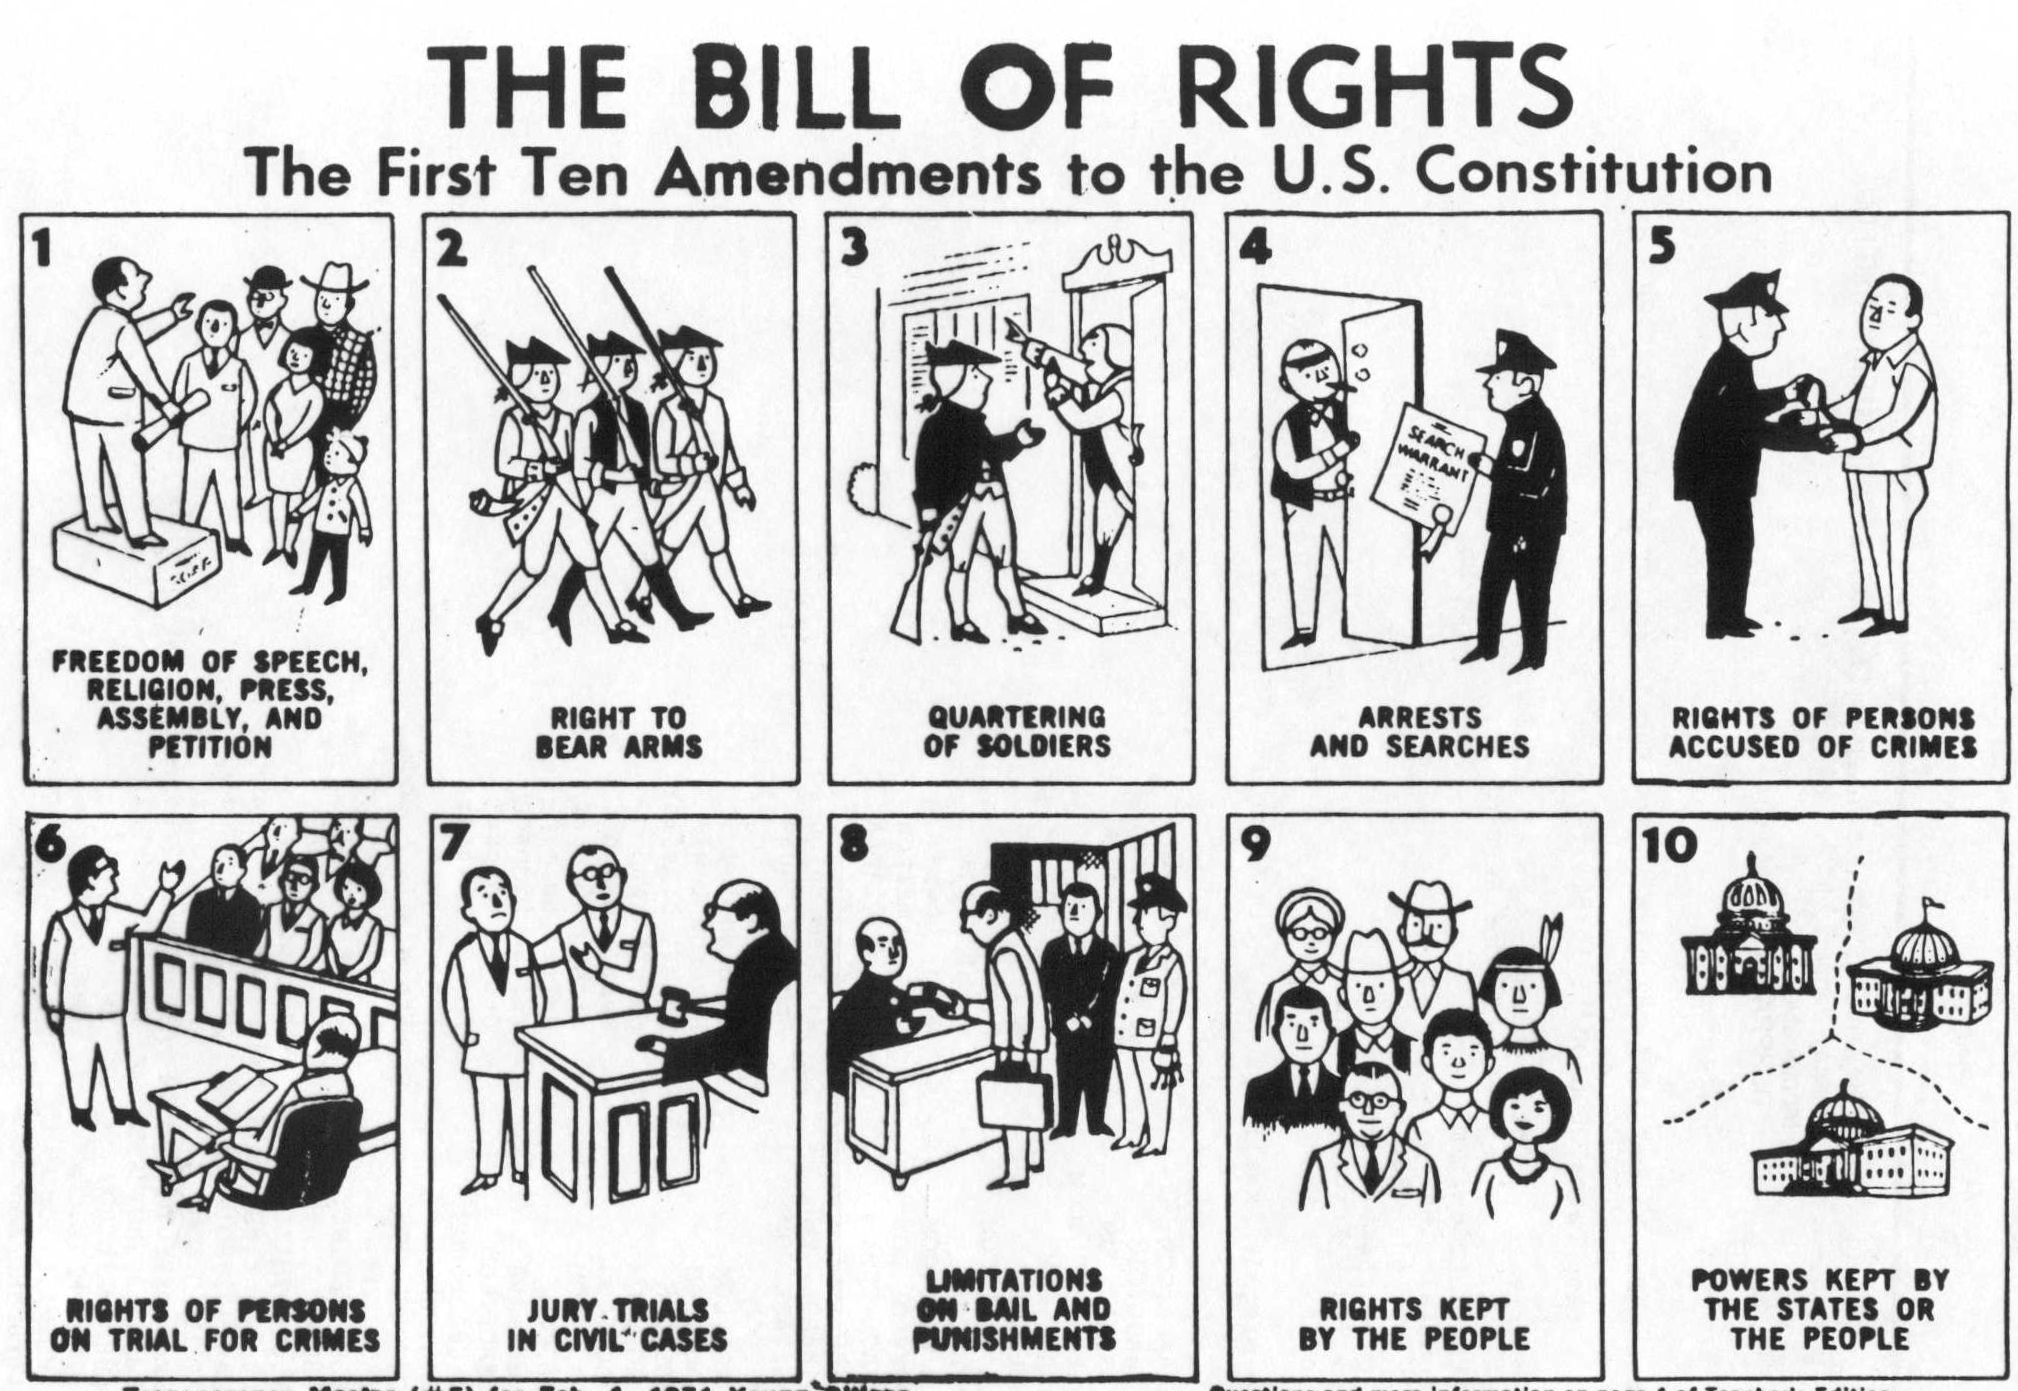 http://govbooktalk.files.wordpress.com/2013/12/cartoon-bill-of-rights-1971-young-citizen-teachers-guide.jpg